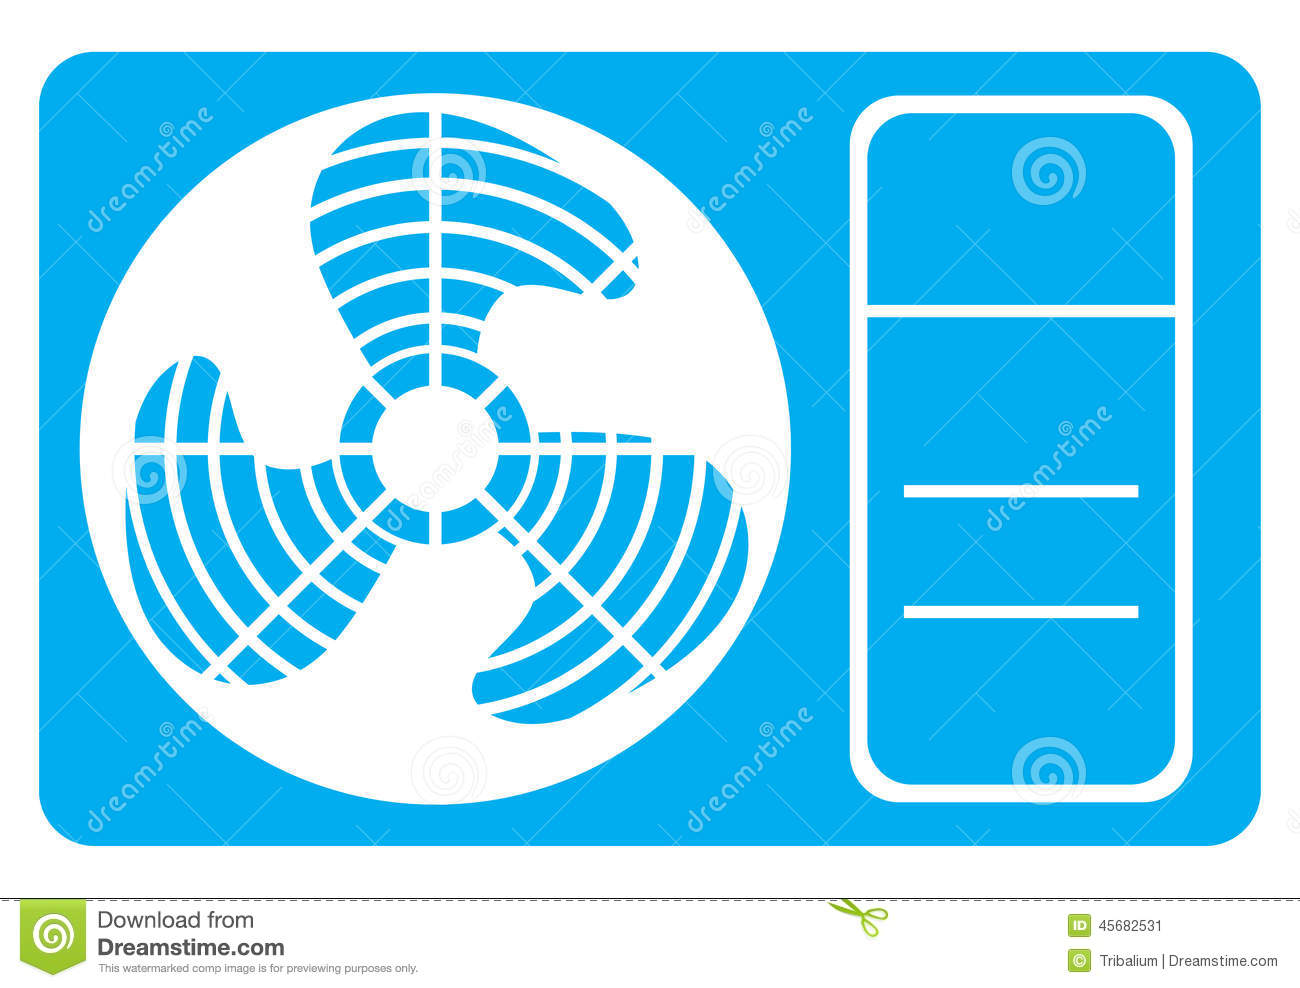 Heat energy clipart likewise Illustration Stock Ic Ne De Climatiseur Image45682531 as well Daikin Wall Mount Split Systems further Watch as well Reflected Ceiling Plans. on air conditioning symbols